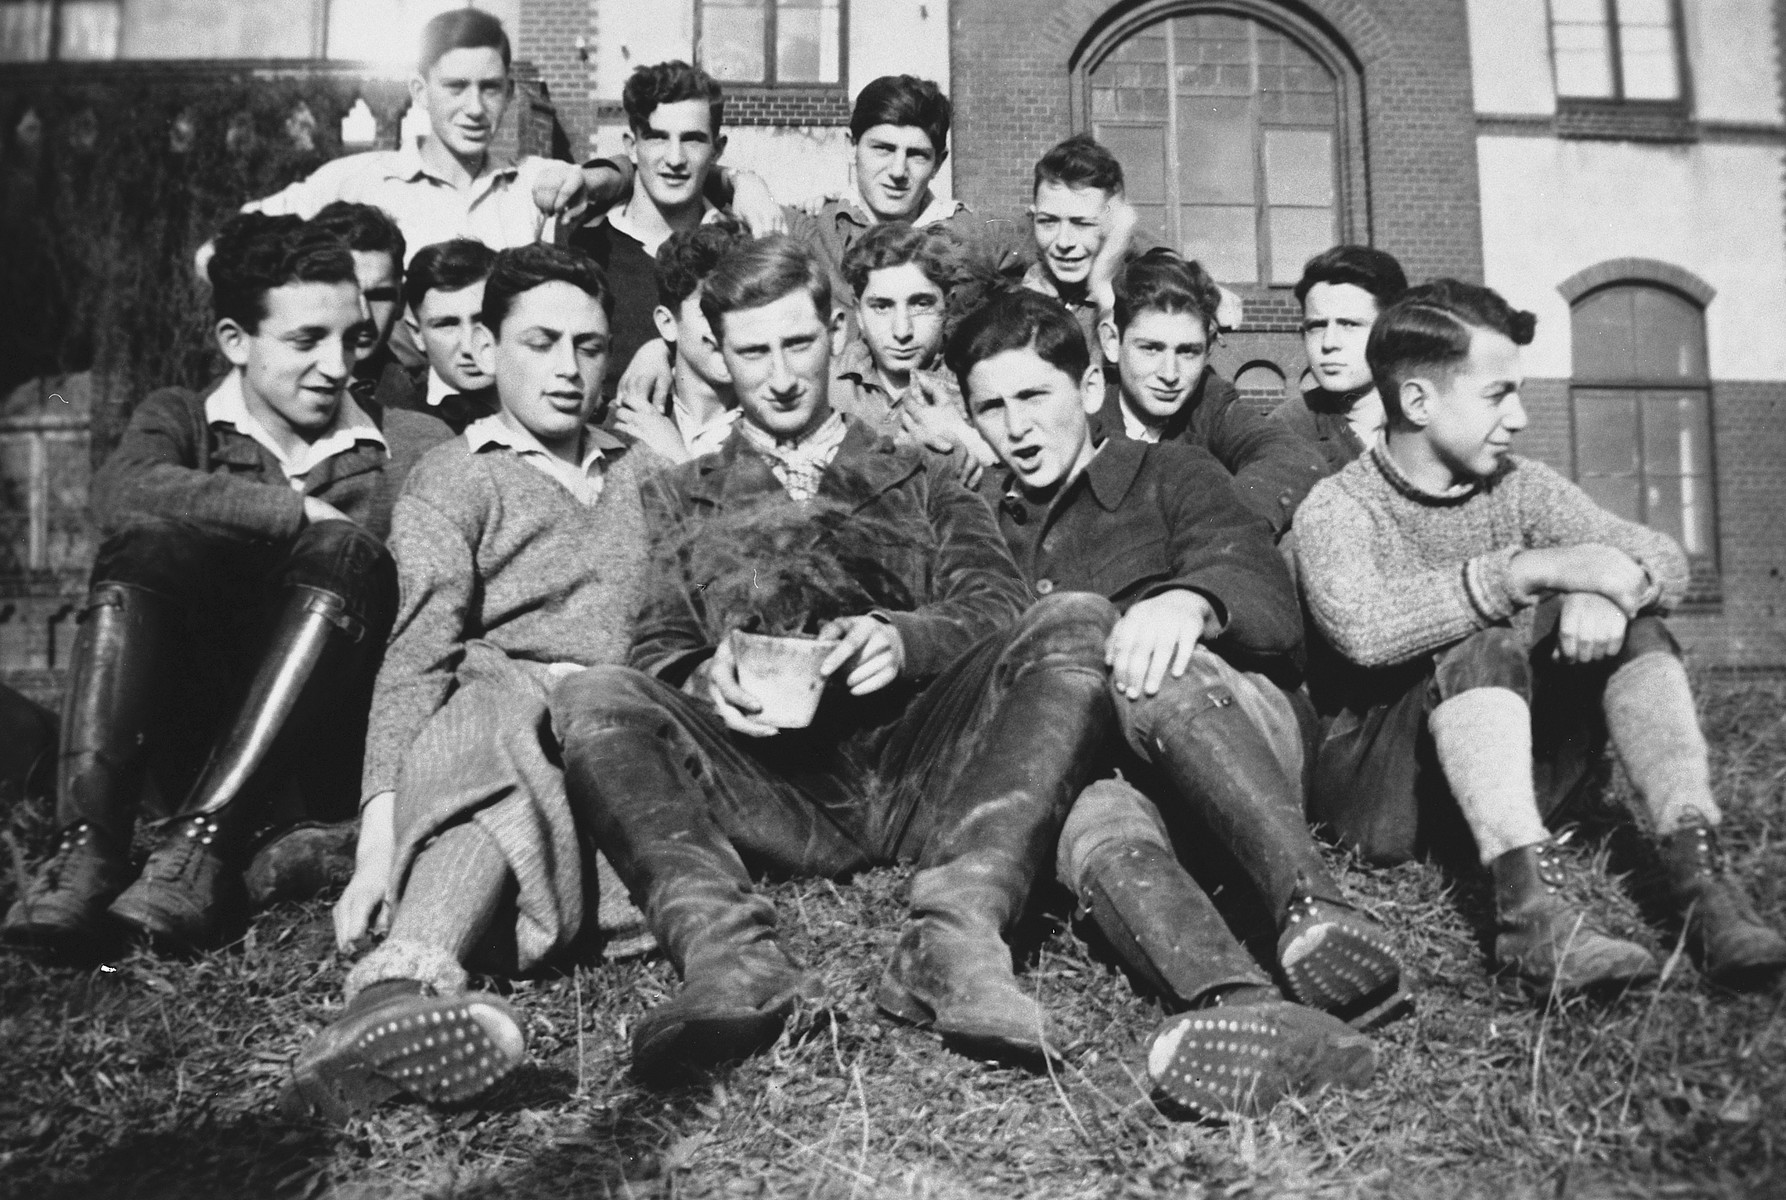 Group portrait of Jewish-German youth in an agricultural training farm outside of Berlin.  Among those pictured is Ernst Meyer in the front center.